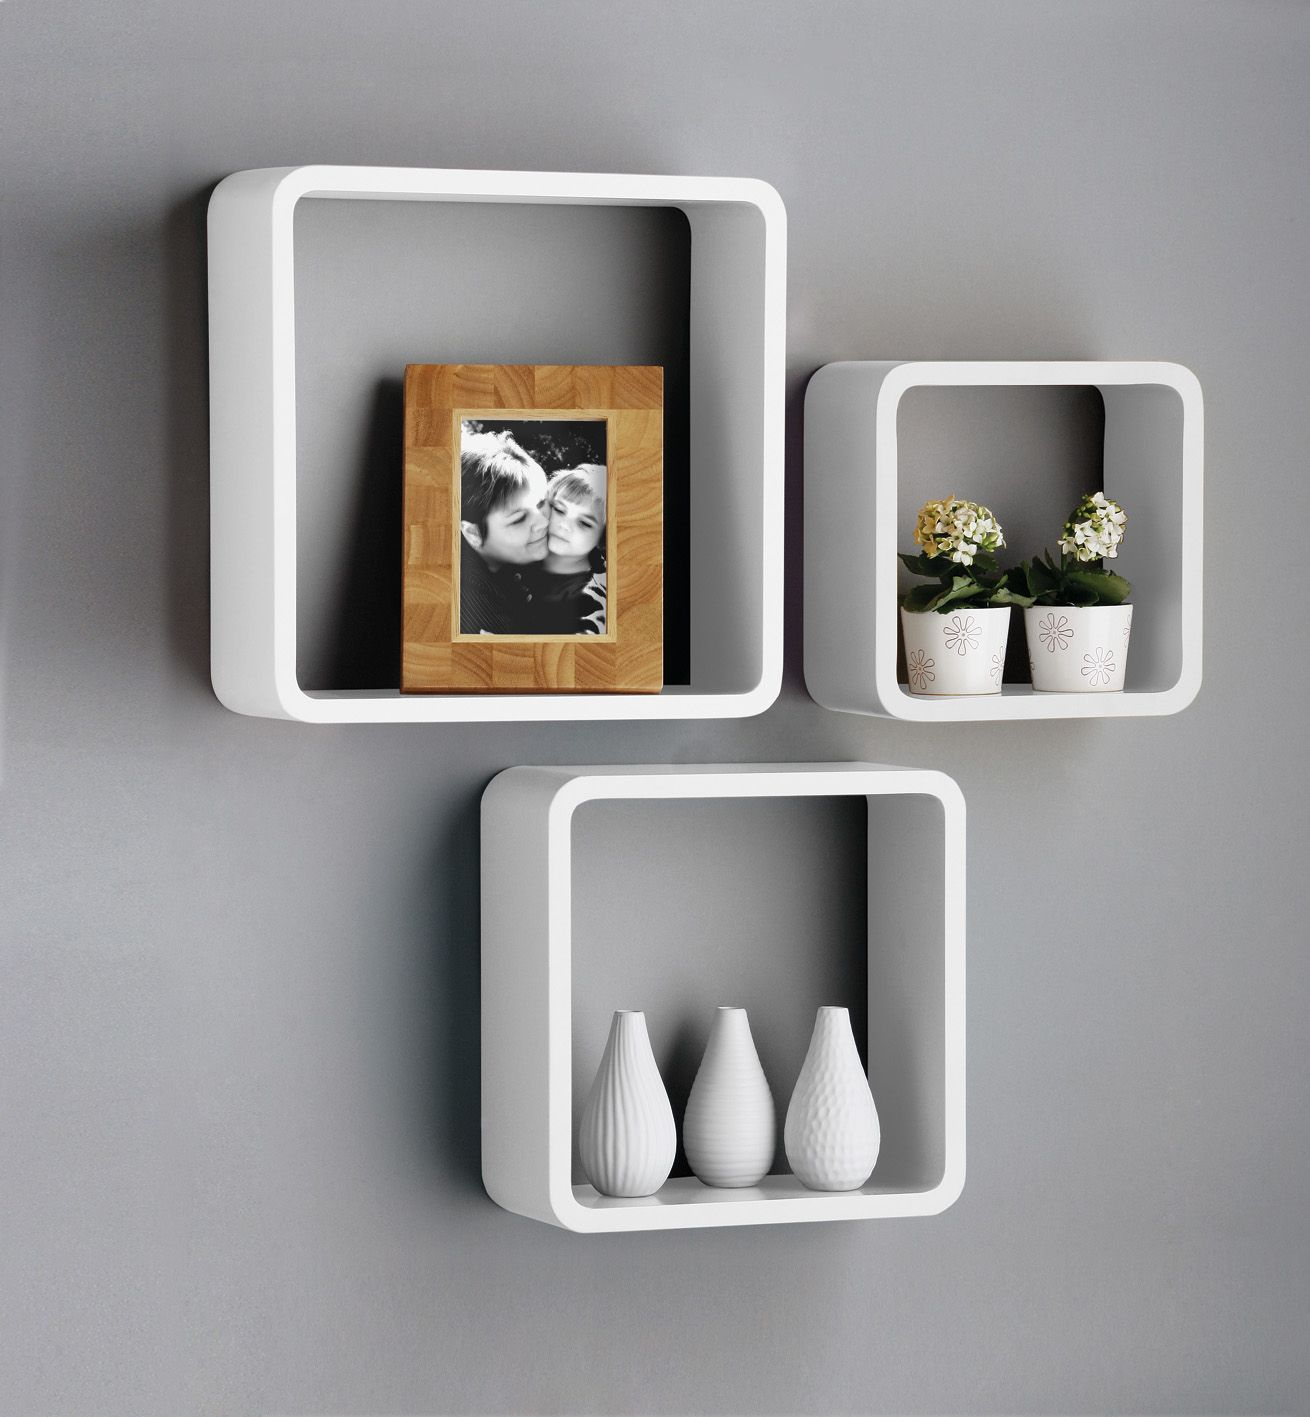 details about new set white black square floating cube wall shelves storage shelf cubes pottery barn book foot single drawer home office inch deep shelving unit box garage ideas